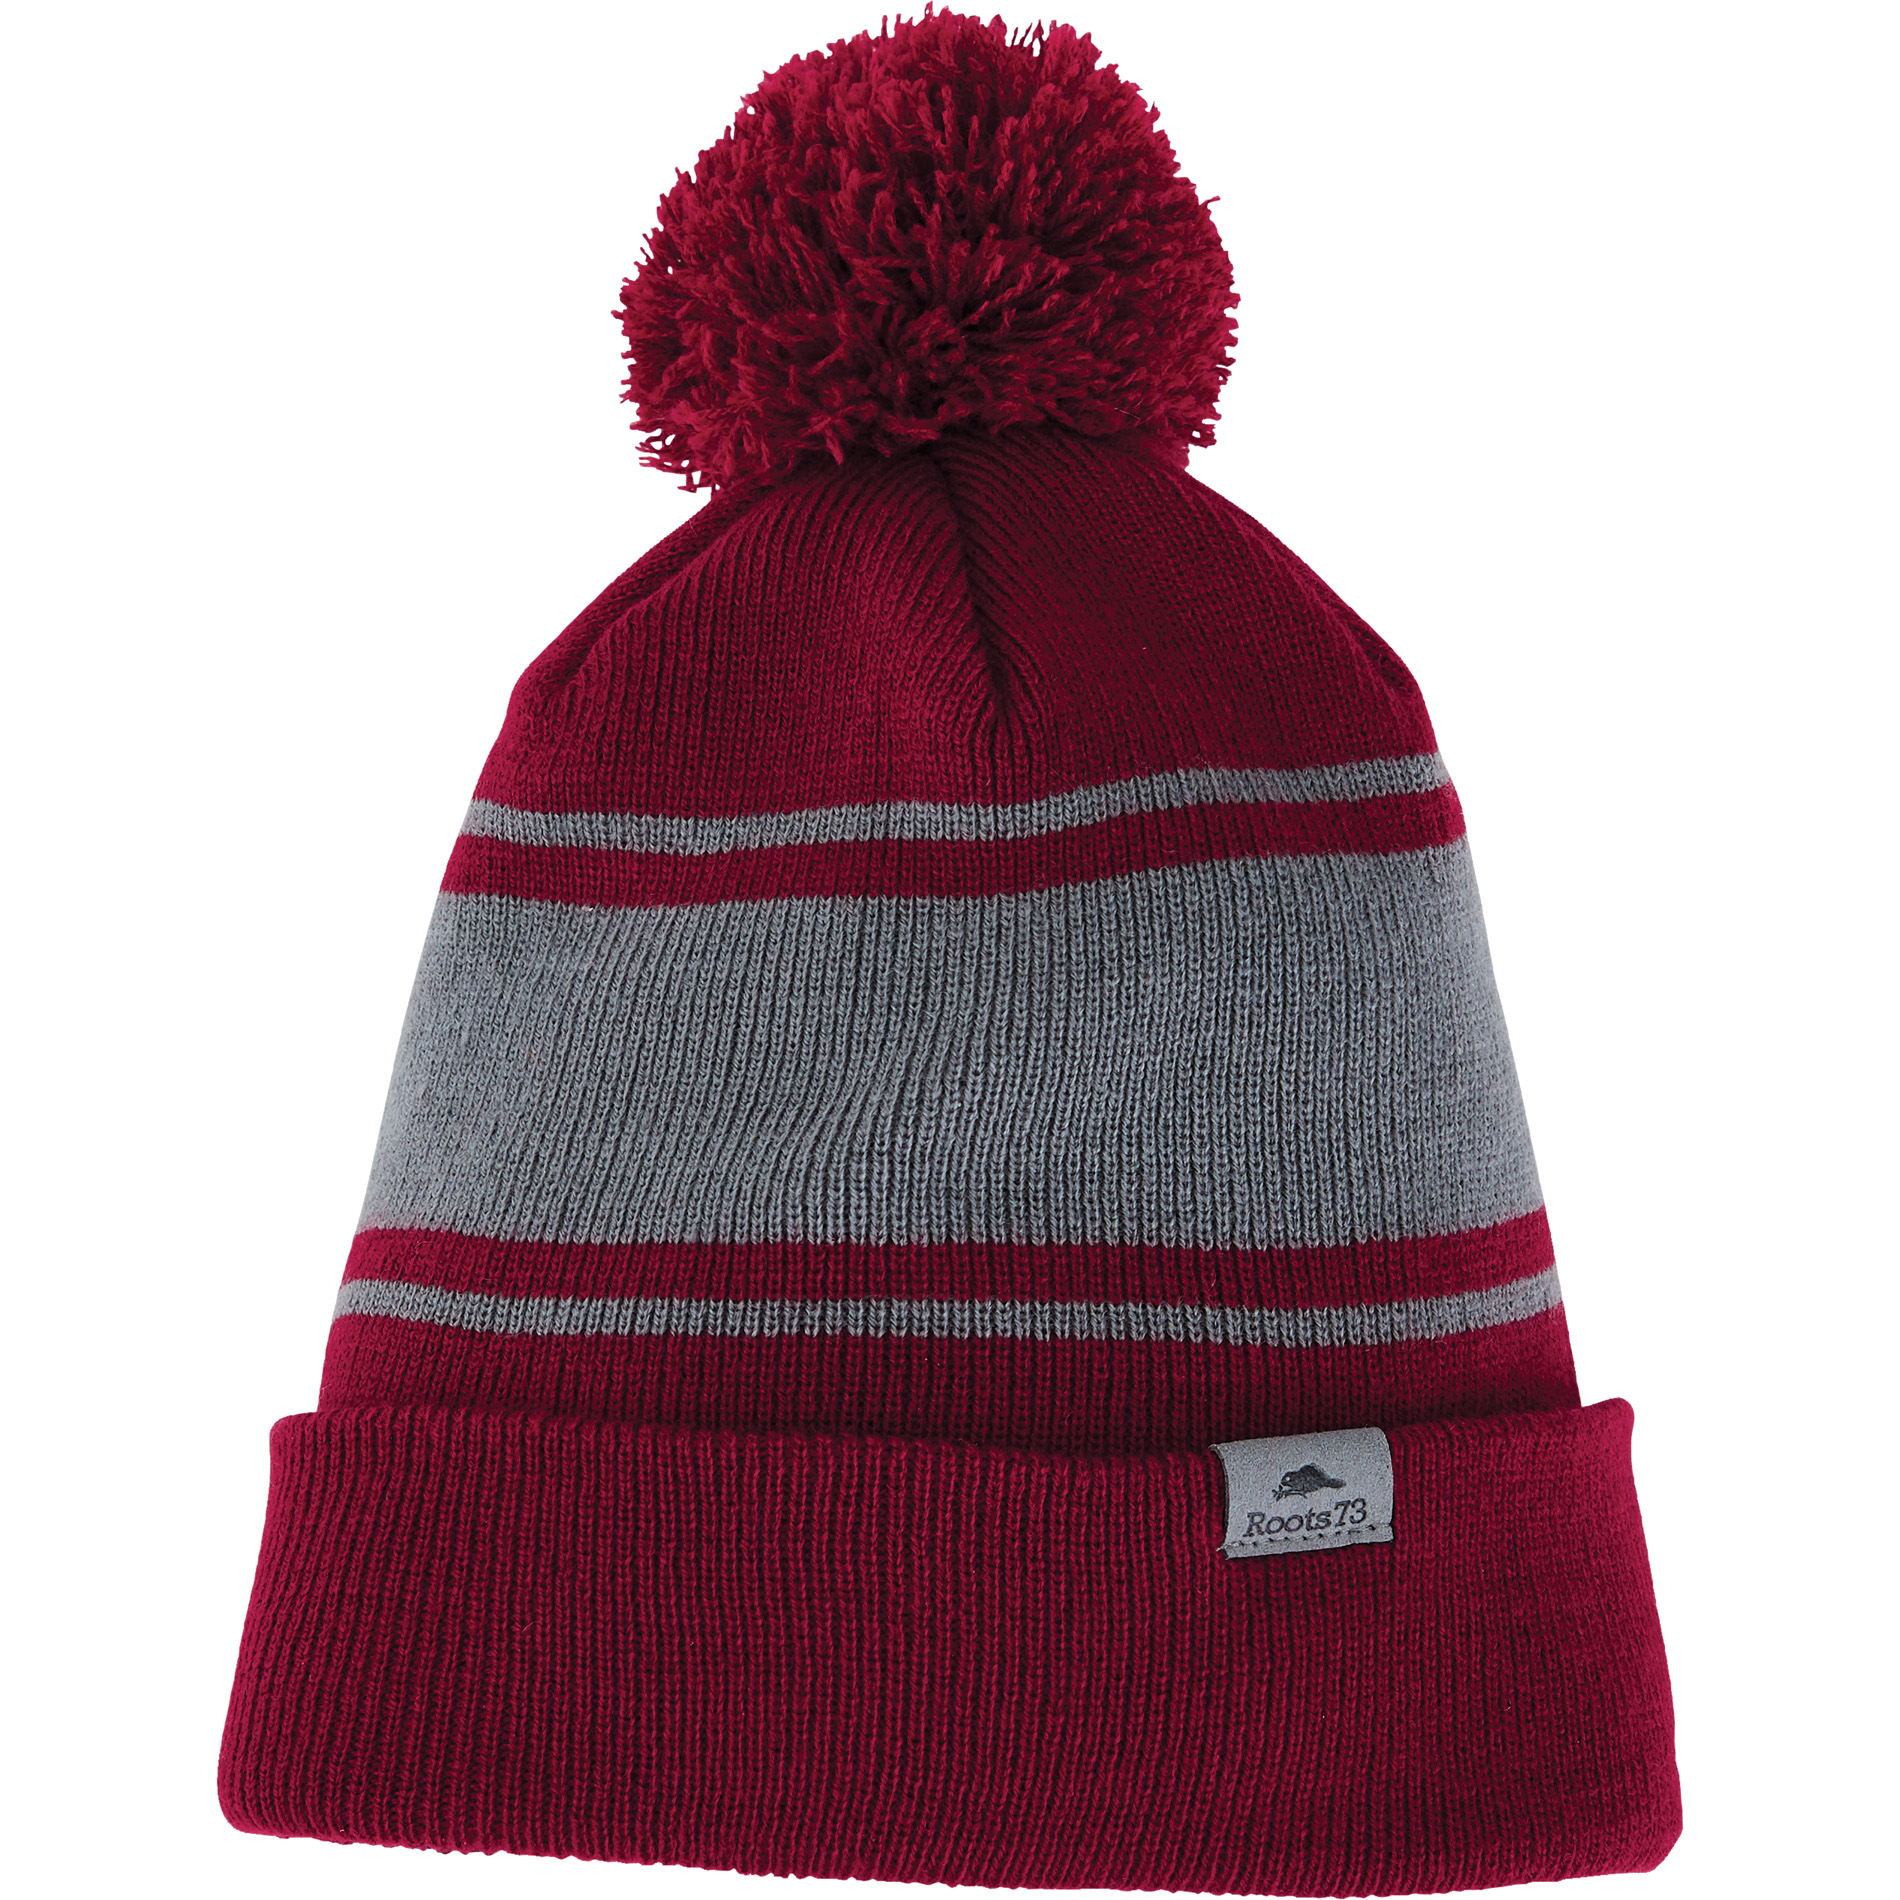 Roots73 TM45109 - Parktrail Knit Toque